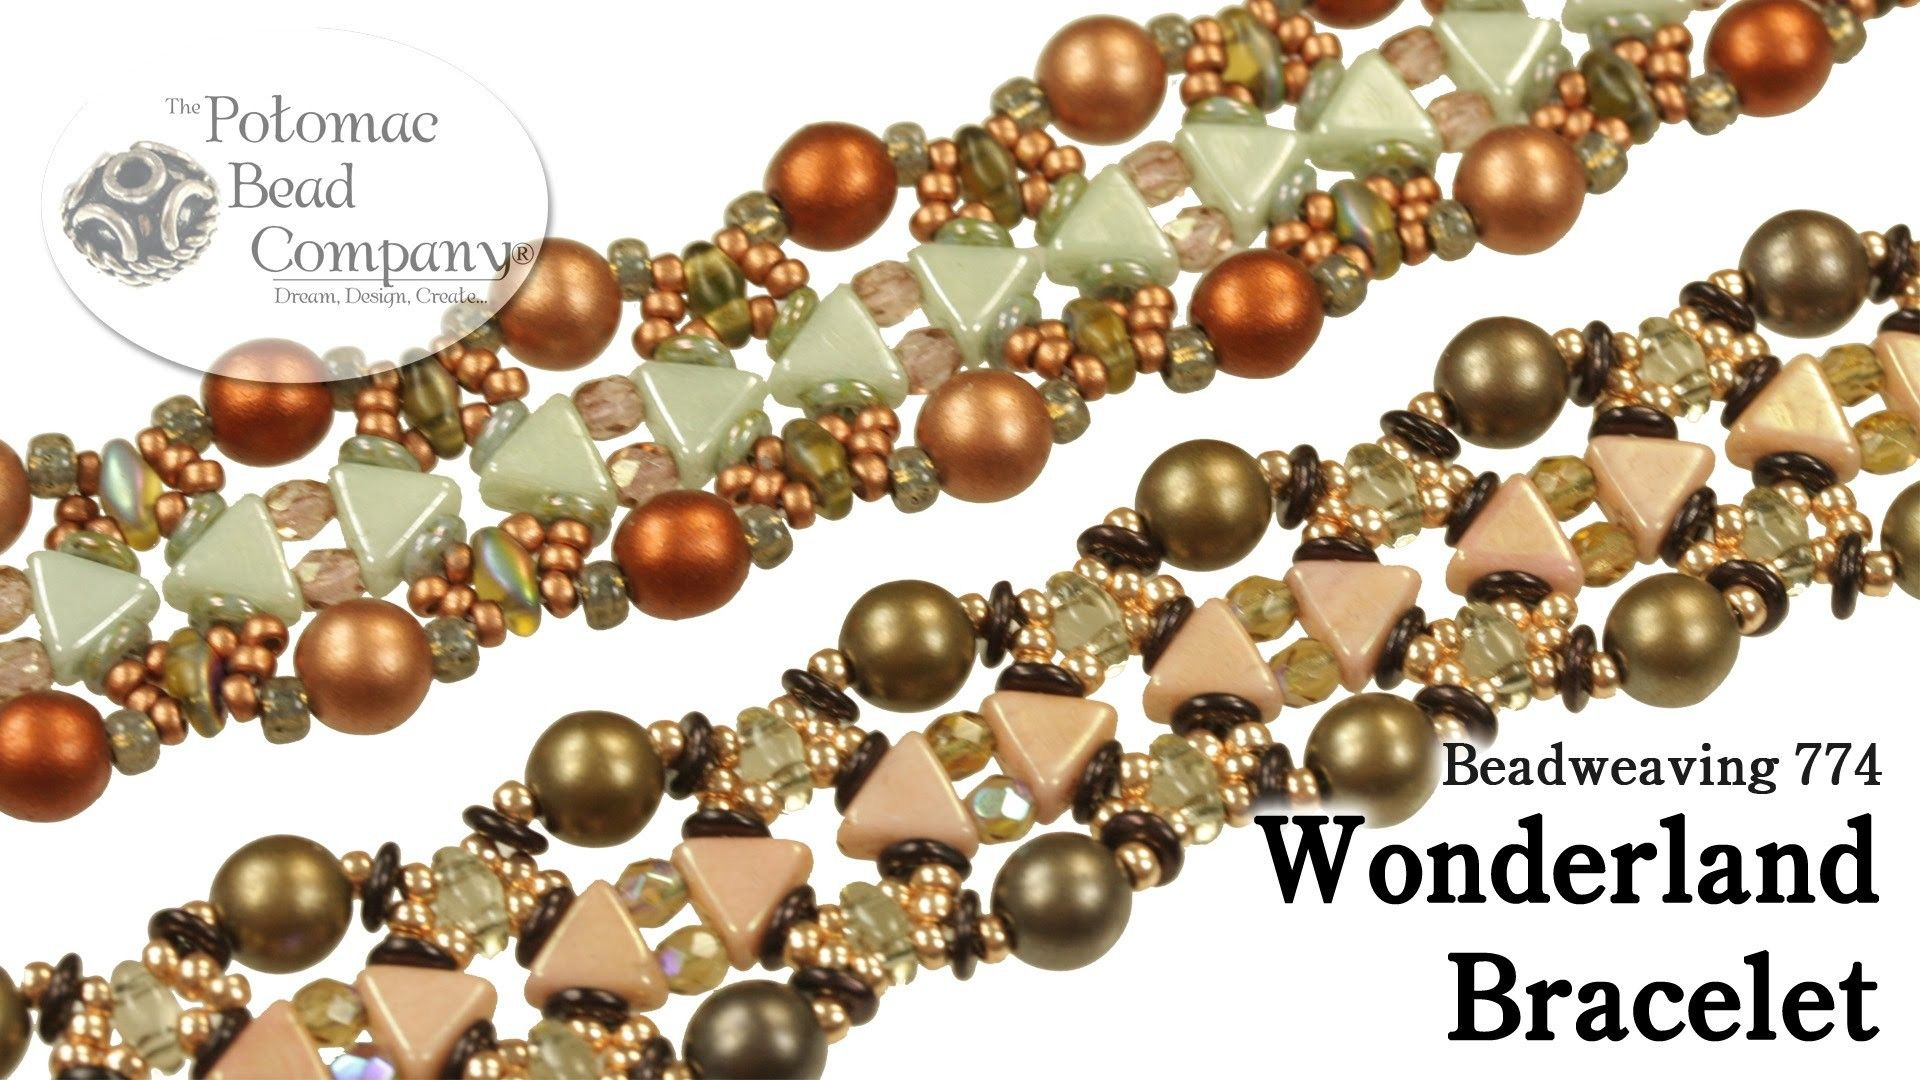 Wonderland bracelet bracelets beaded christmas ornaments and